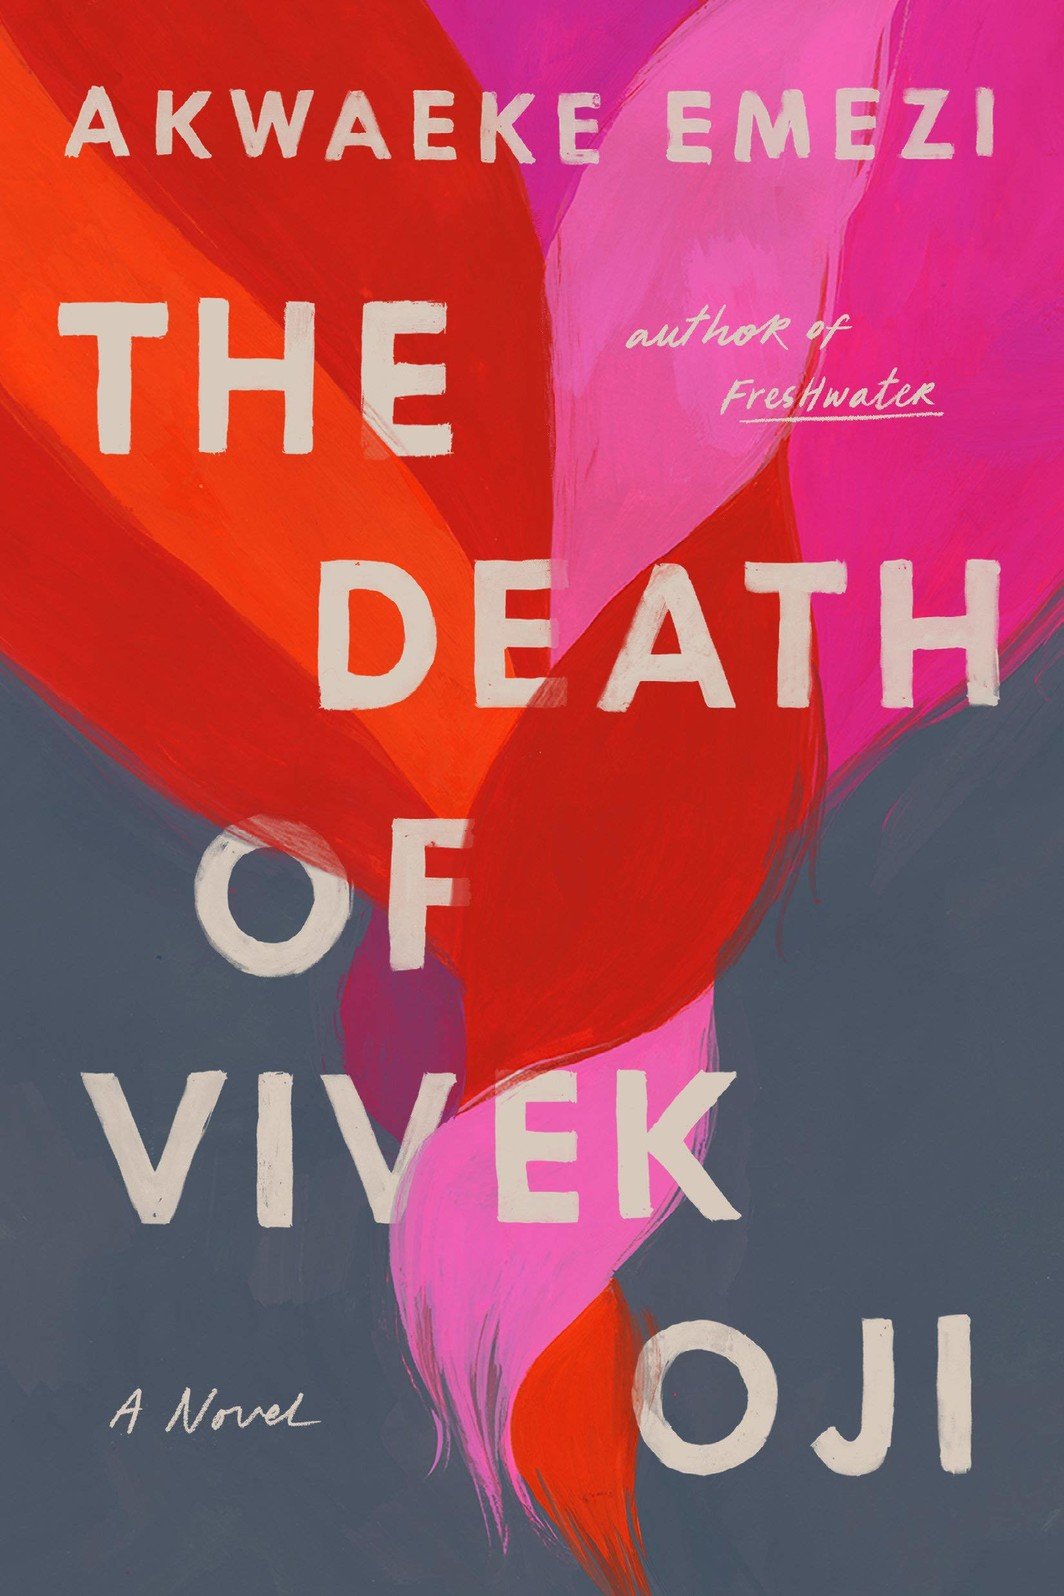 The cover of The Death of Vivek Oji